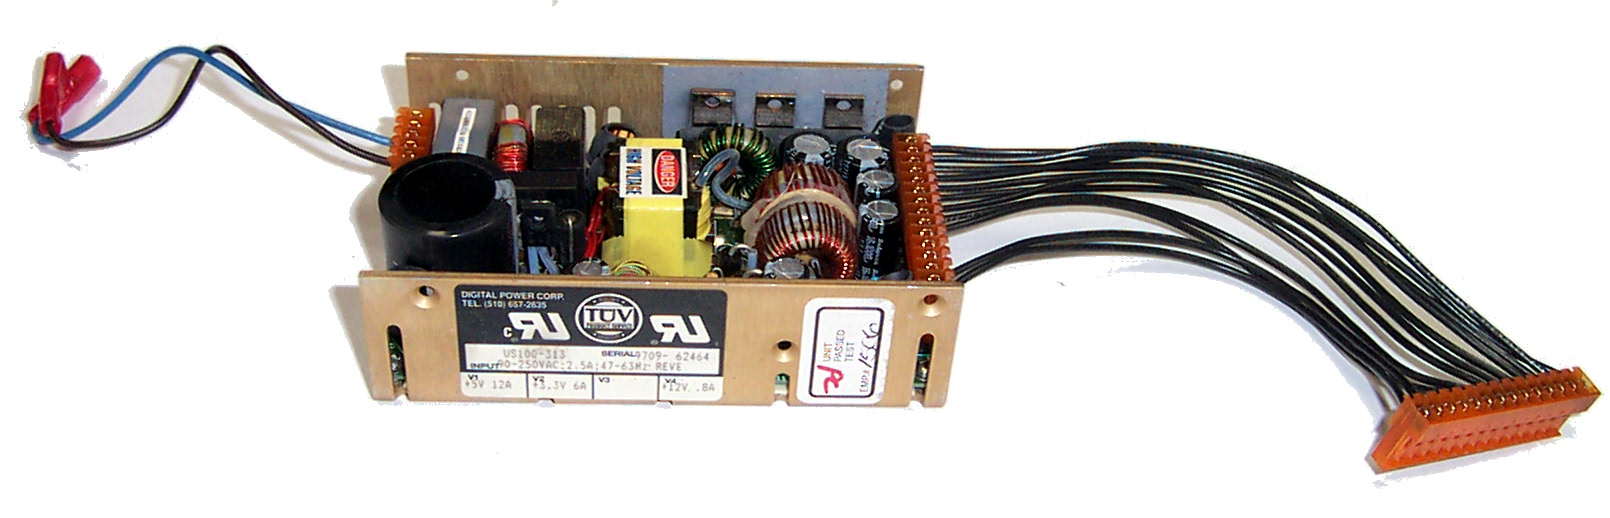 Digital Power US100-313 I/P 90-250VAC 2.5A Power Supply